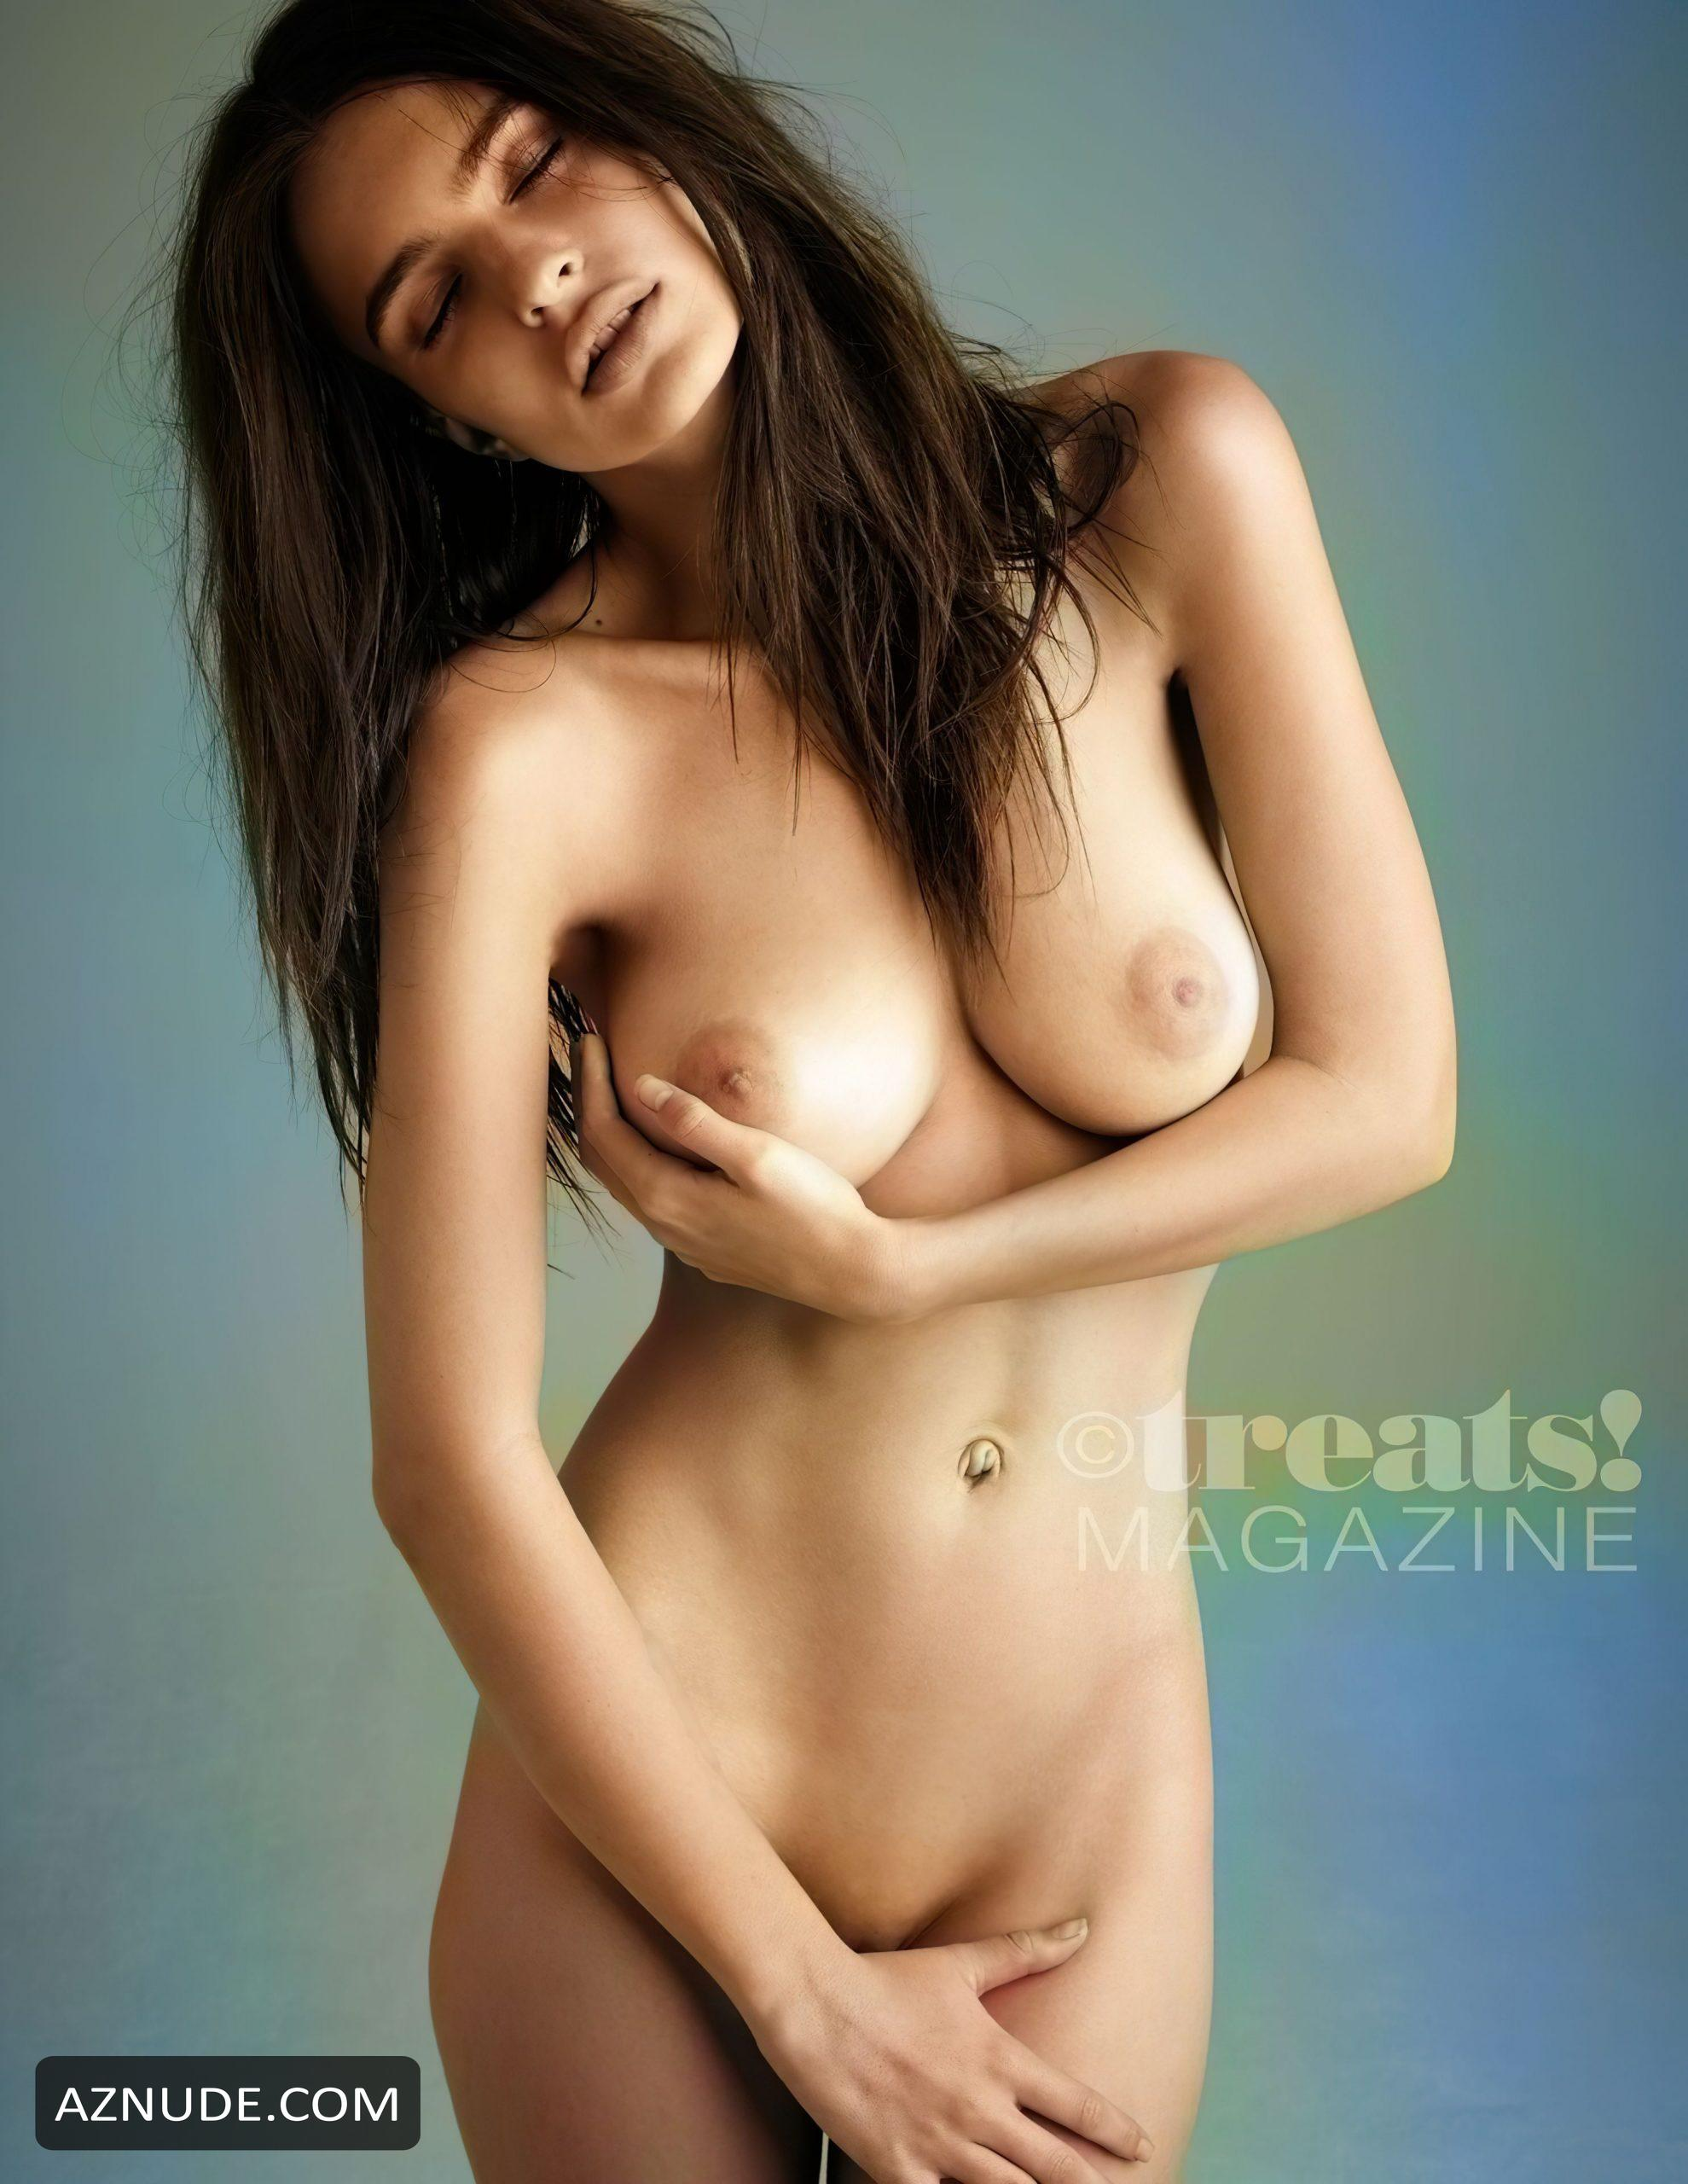 Topless Treats Nude Pic